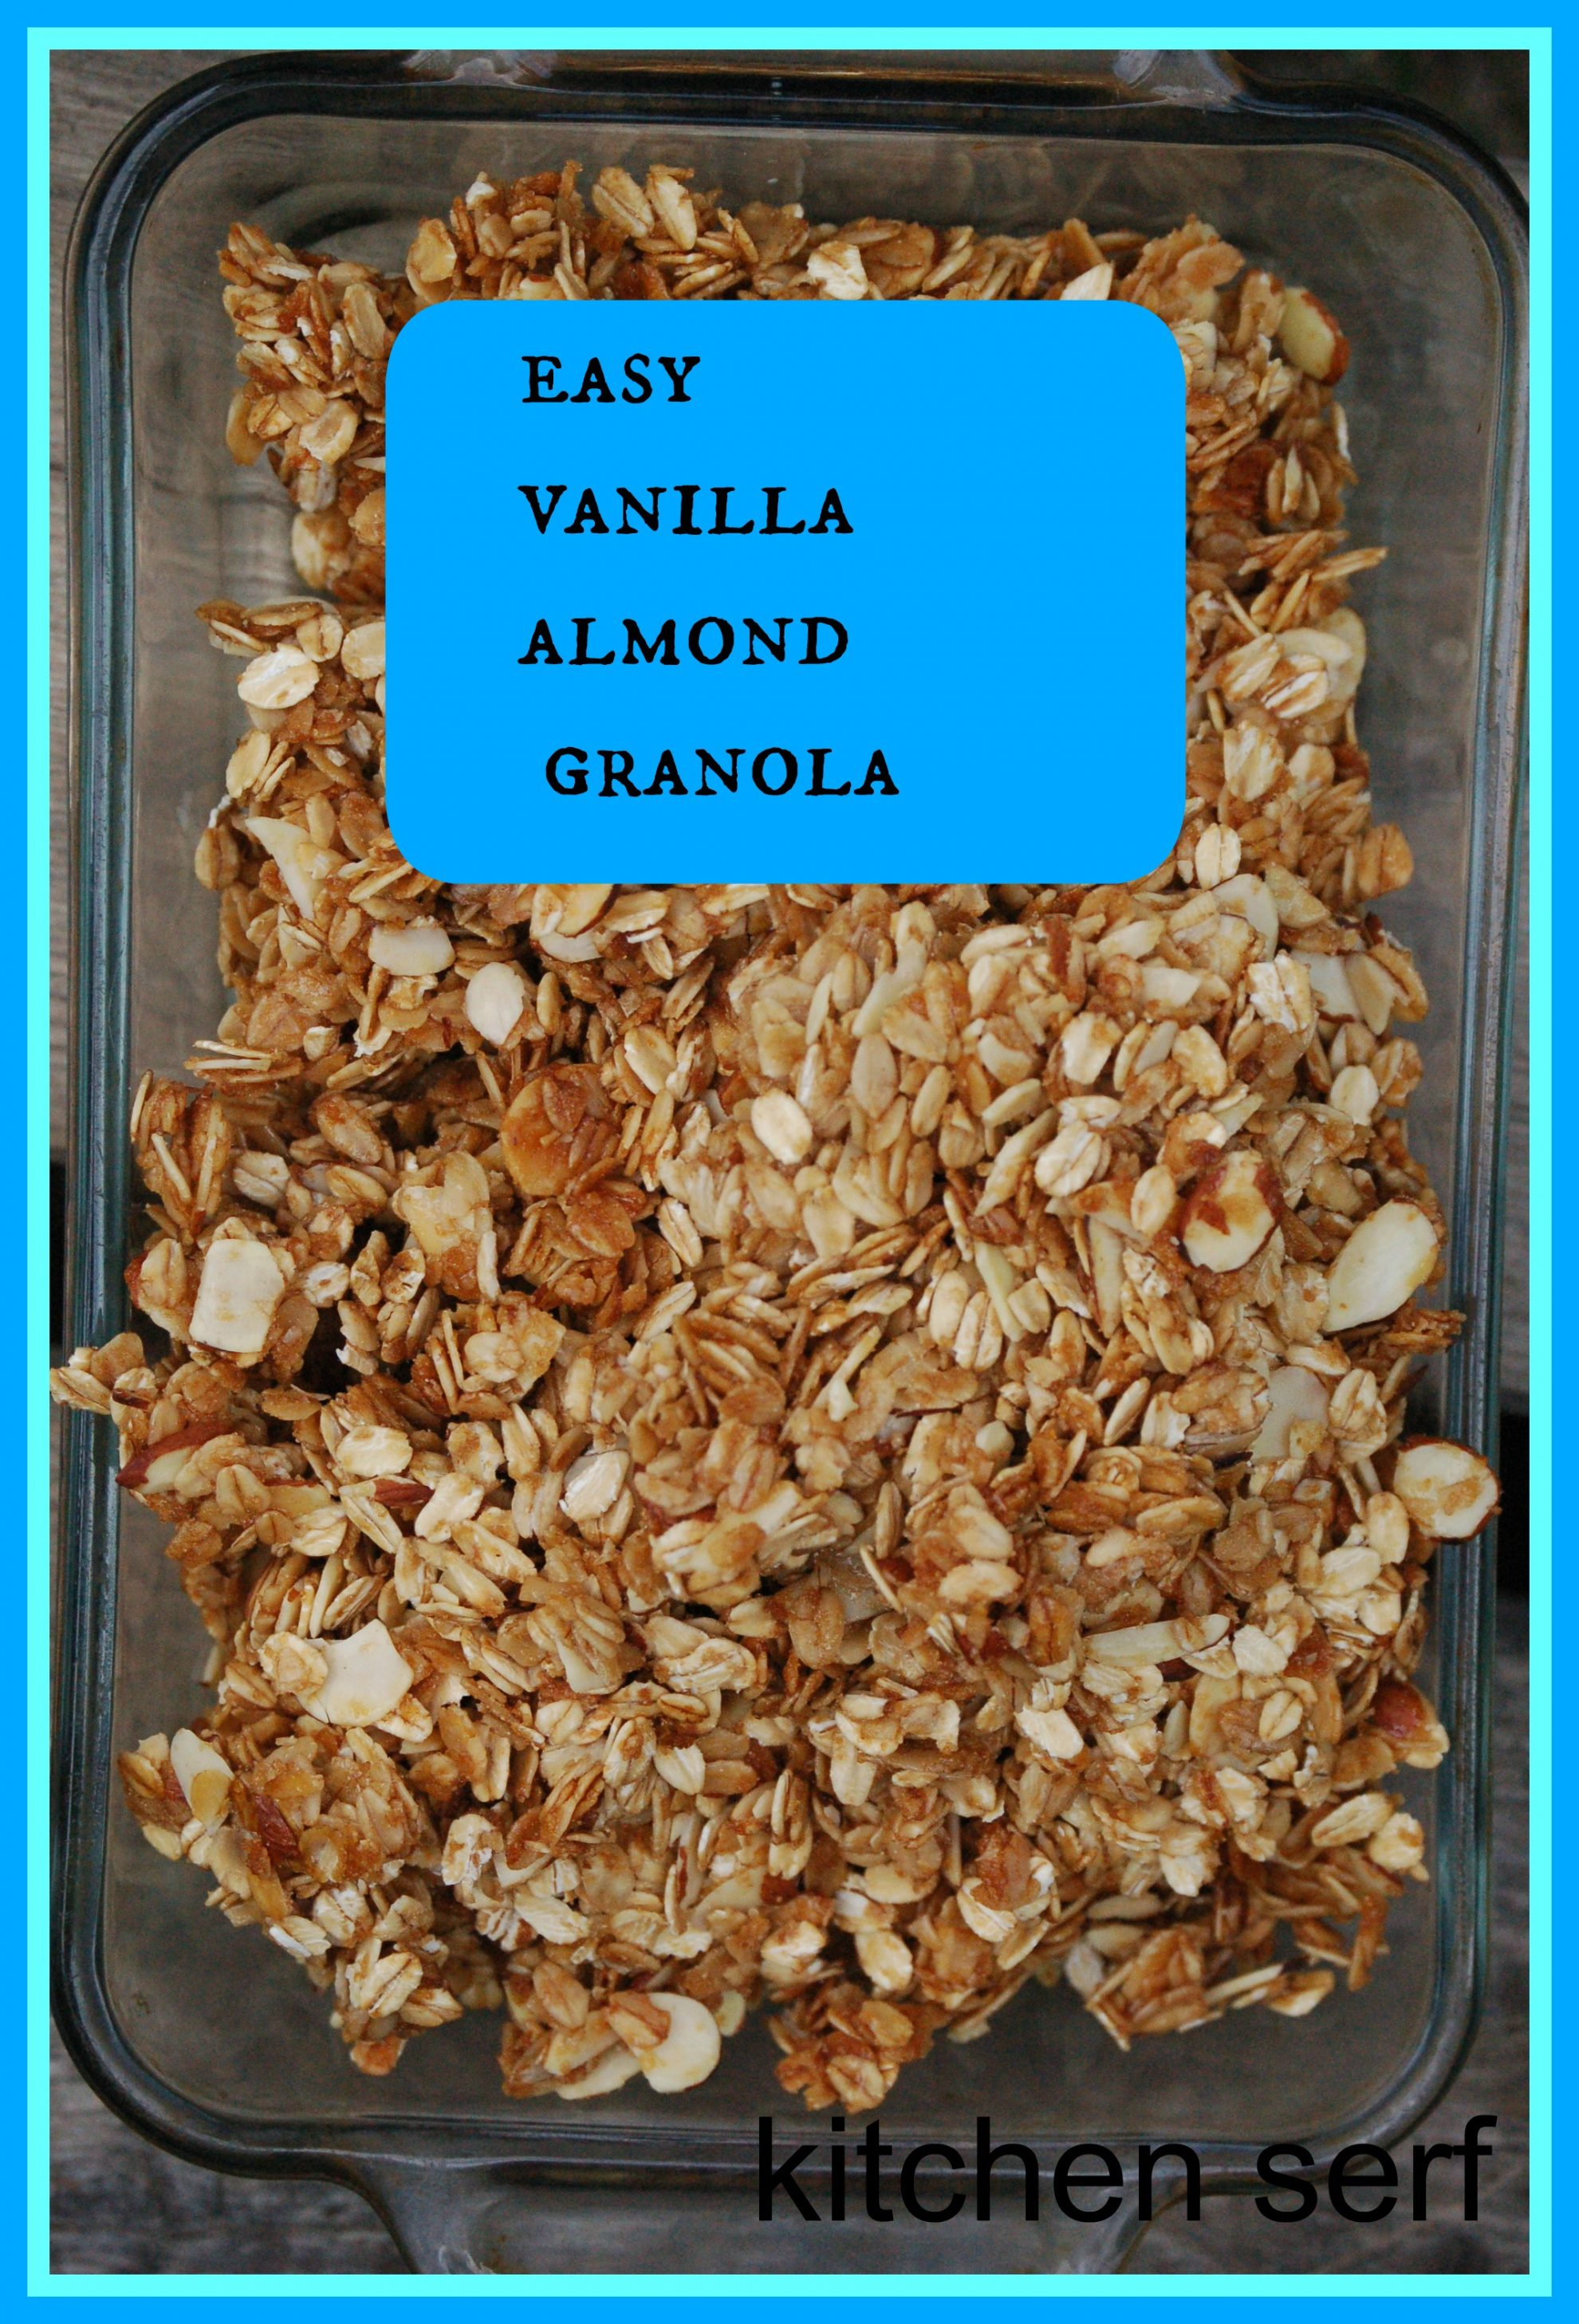 Vanilla Almond Granola Impress Family + Friends Three Reasons to Make Your Own Batch